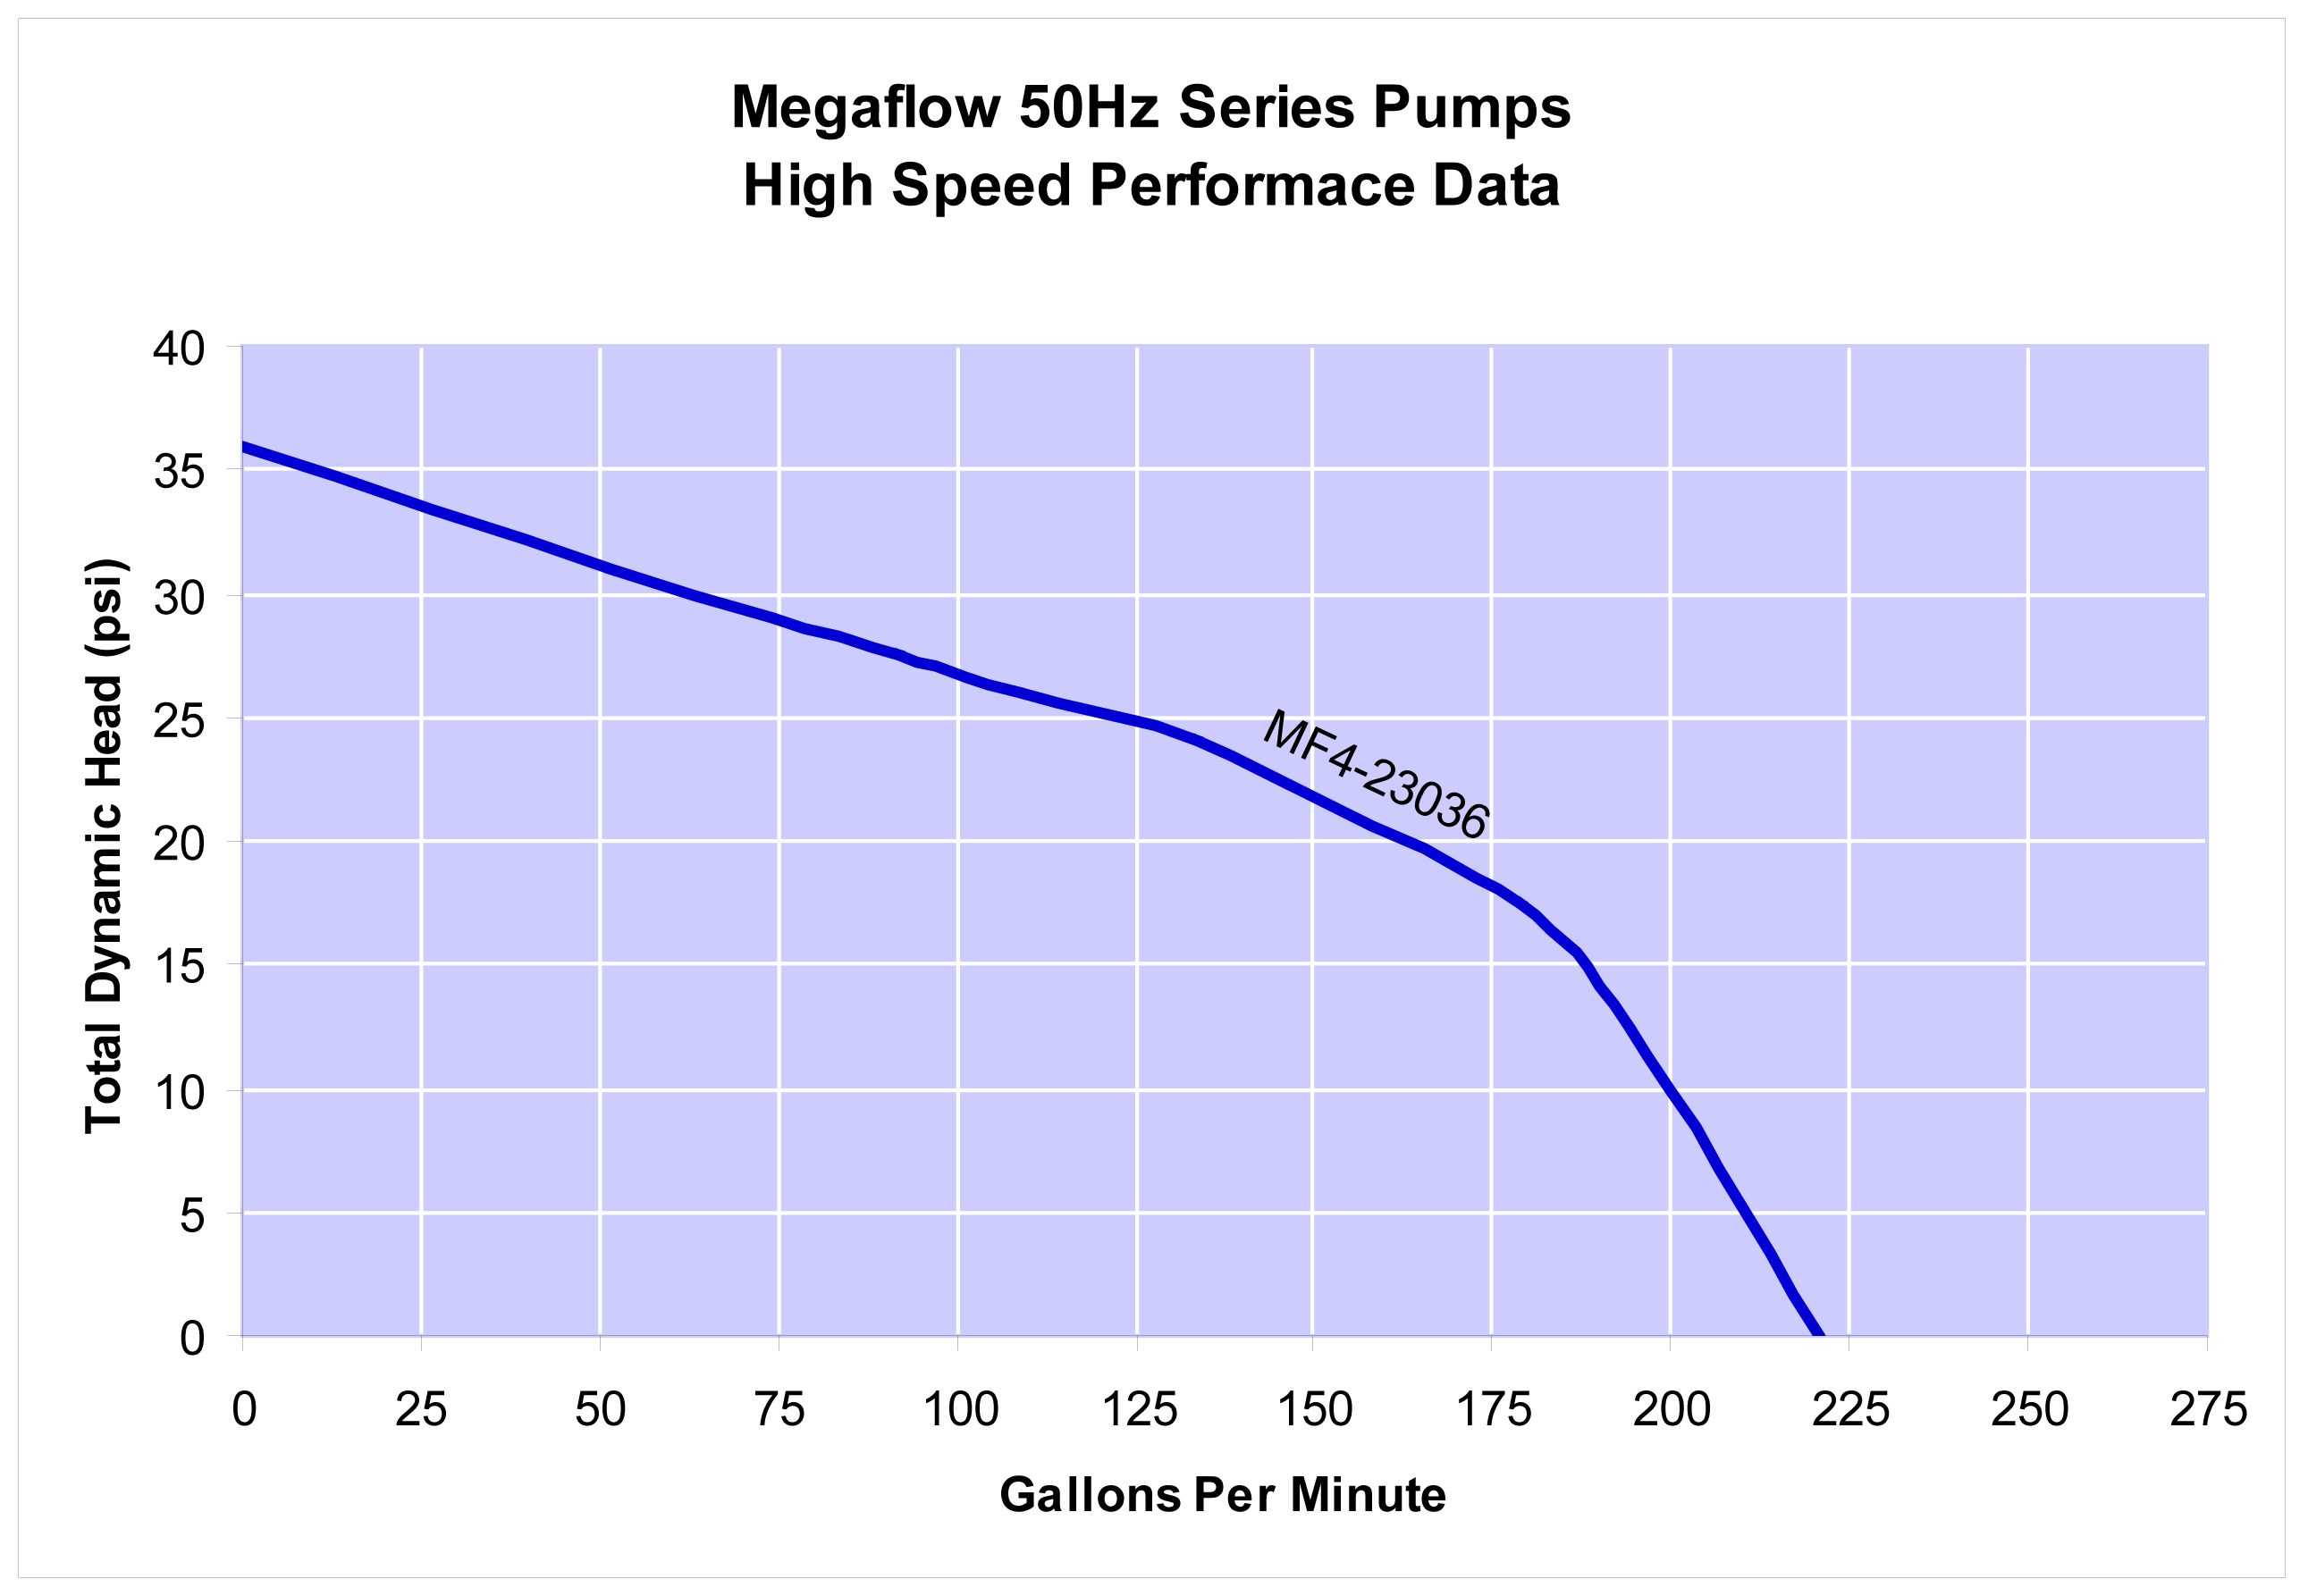 Megaflow Performance Data